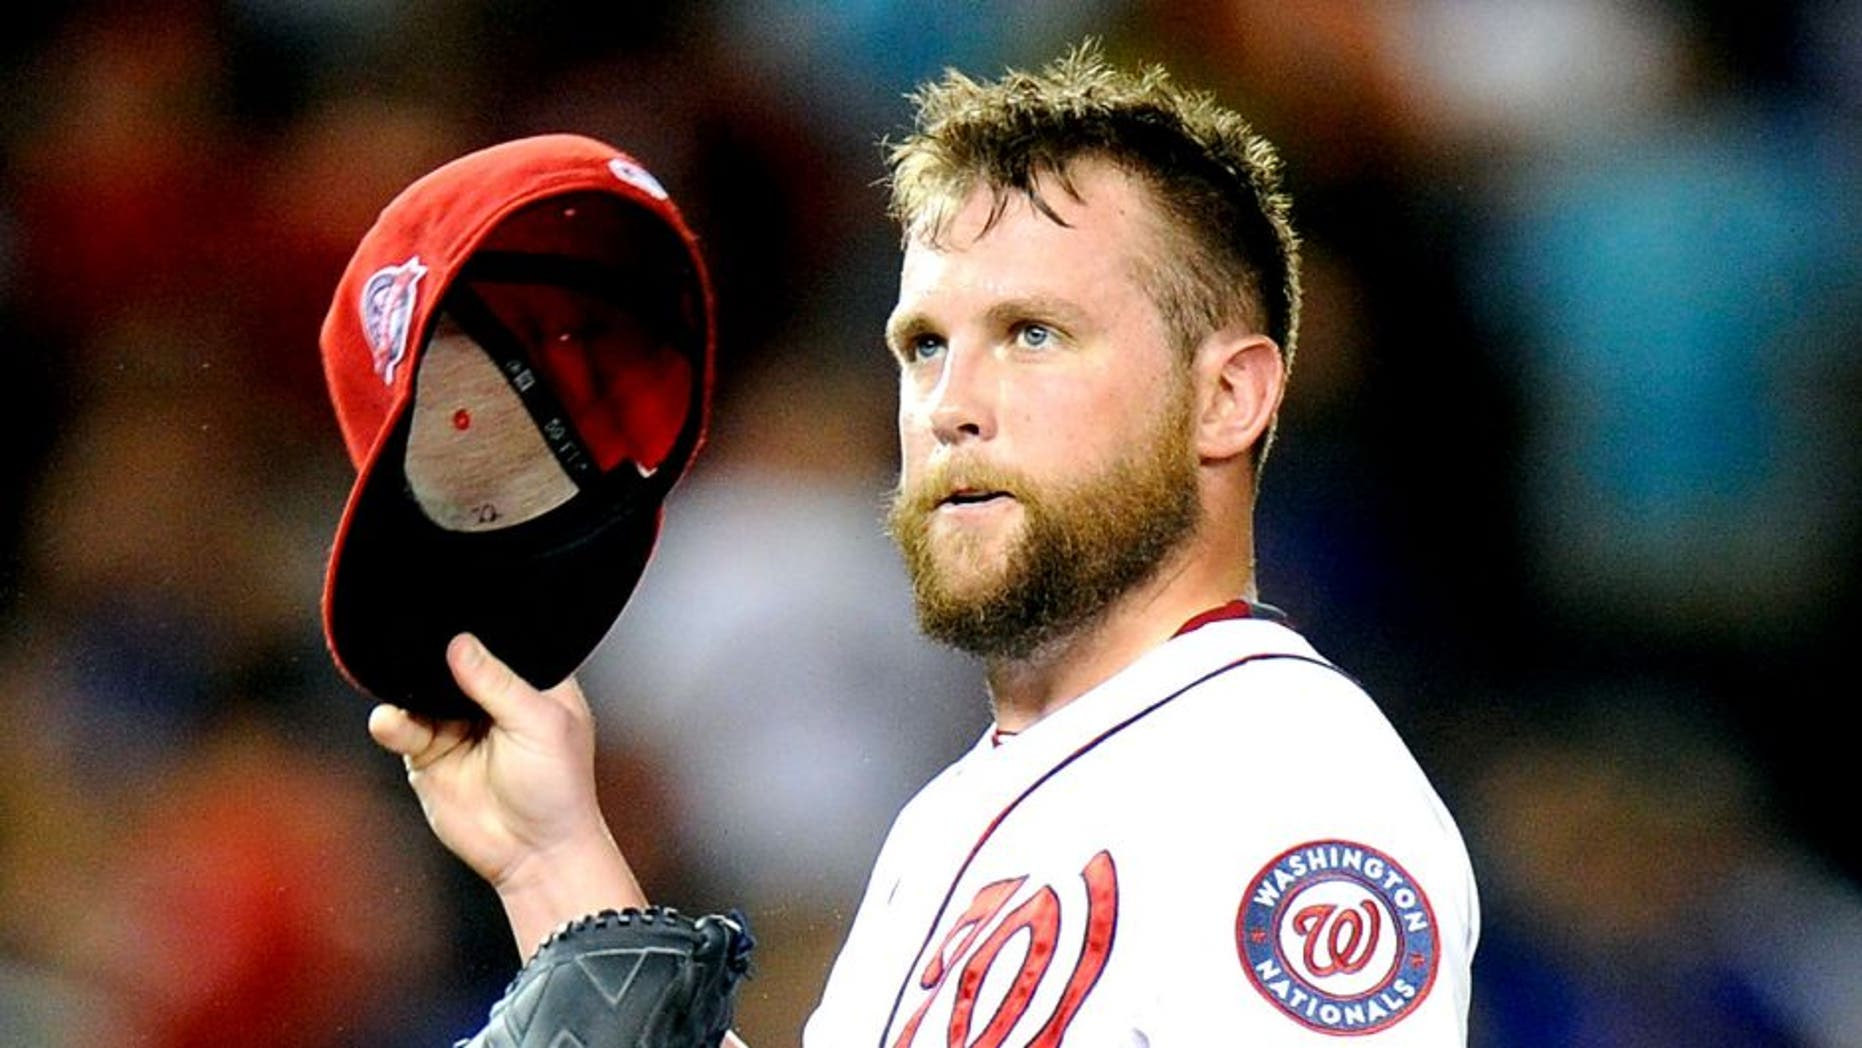 WASHINGTON, DC - SEPTEMBER 08: Drew Storen #22 of the Washington Nationals reacts after walking in a run in the seventh inning against the New York Mets at Nationals Park on September 8, 2015 in Washington, DC. New York won the game 8-7. (Photo by Greg Fiume/Getty Images)